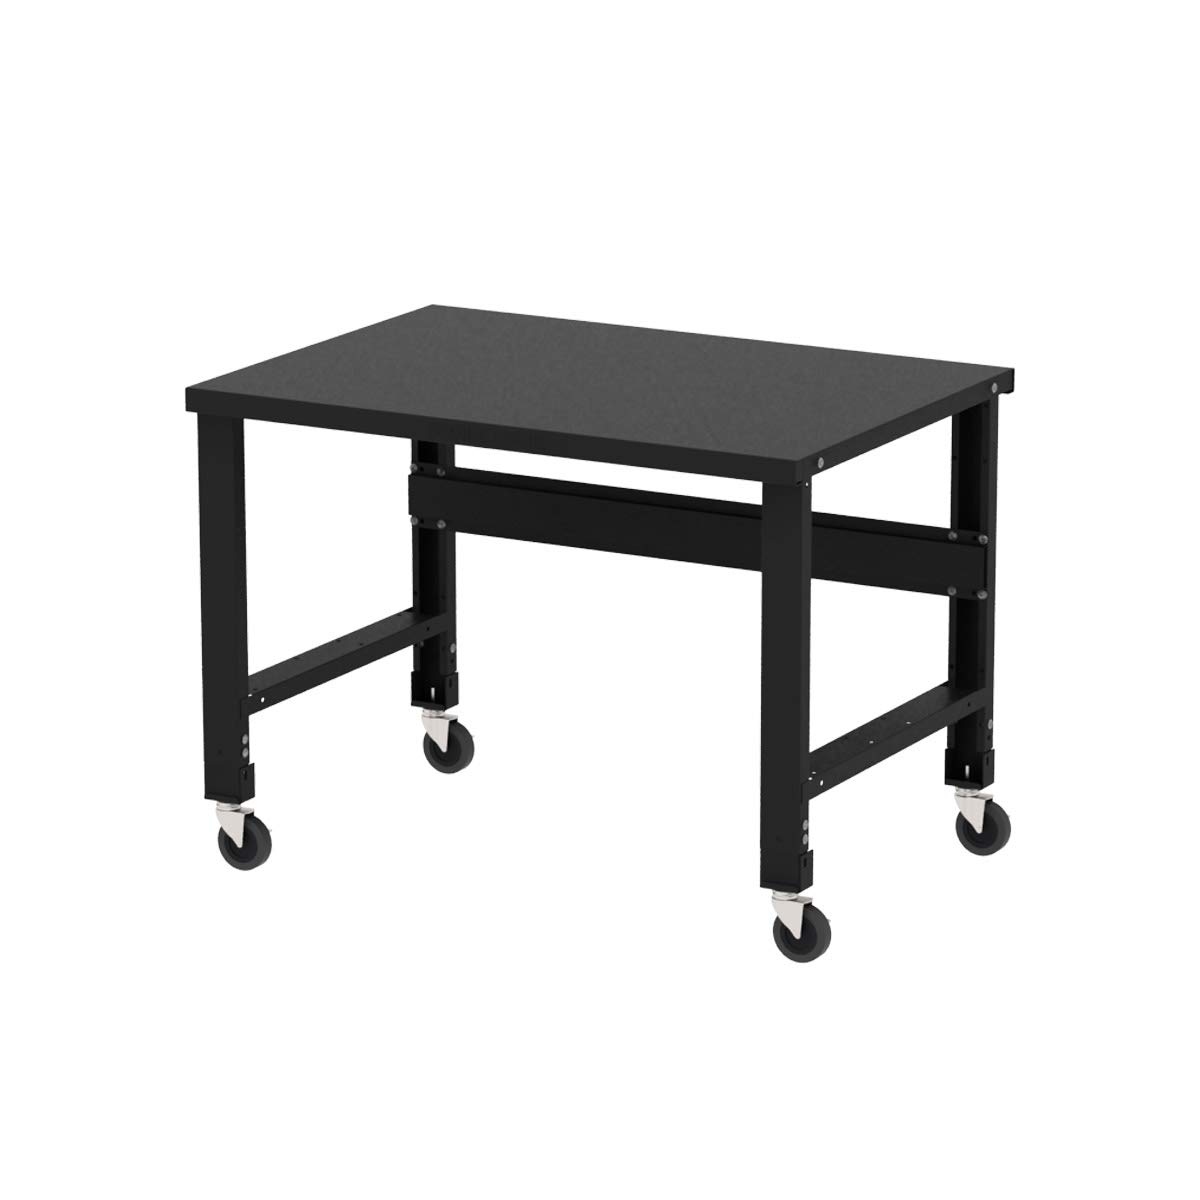 Borroughs Adjustable Height Black Painted Steel Top Workbench with Caster Kit, 34 inches x 48 inches by Borroughs